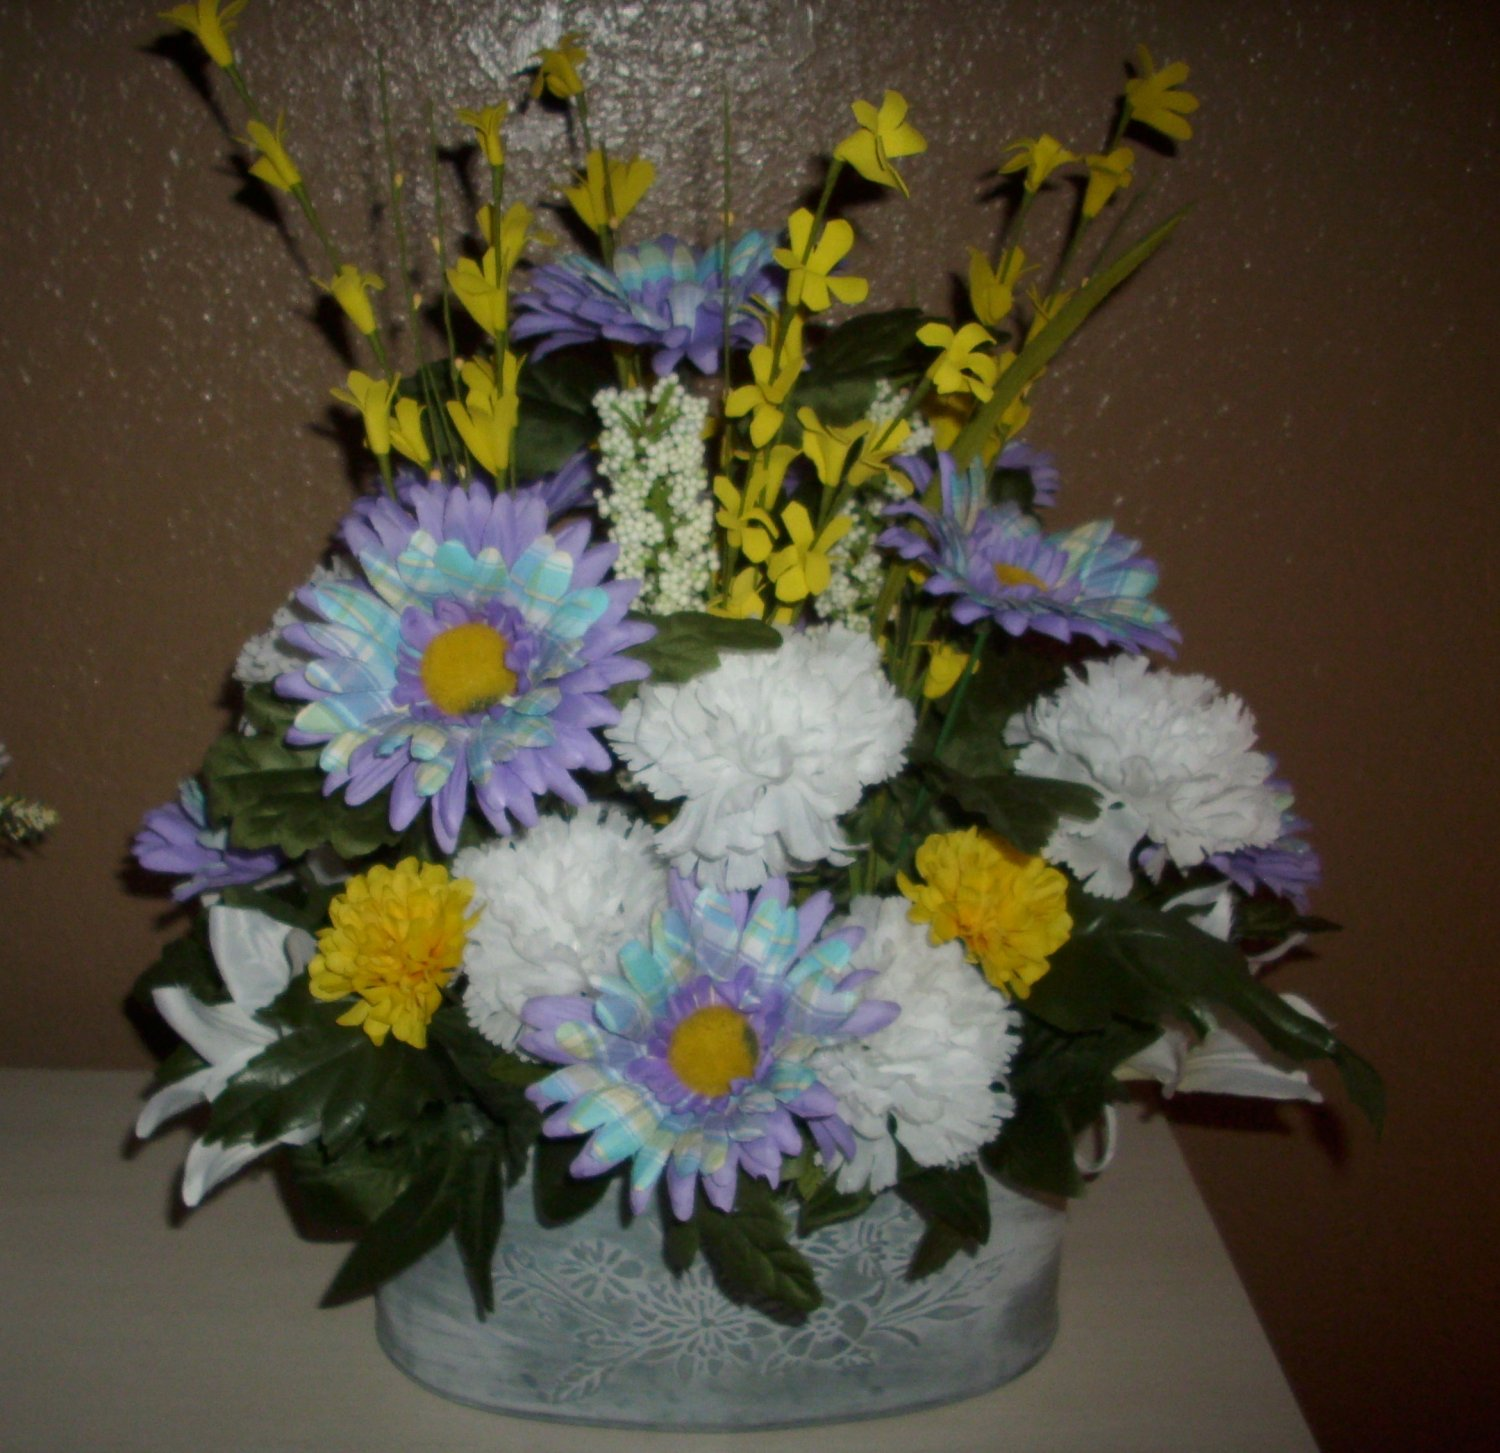 Floral Bouquet Country Purple & Geen Plaid Gerber Daisy's, to brighten any room